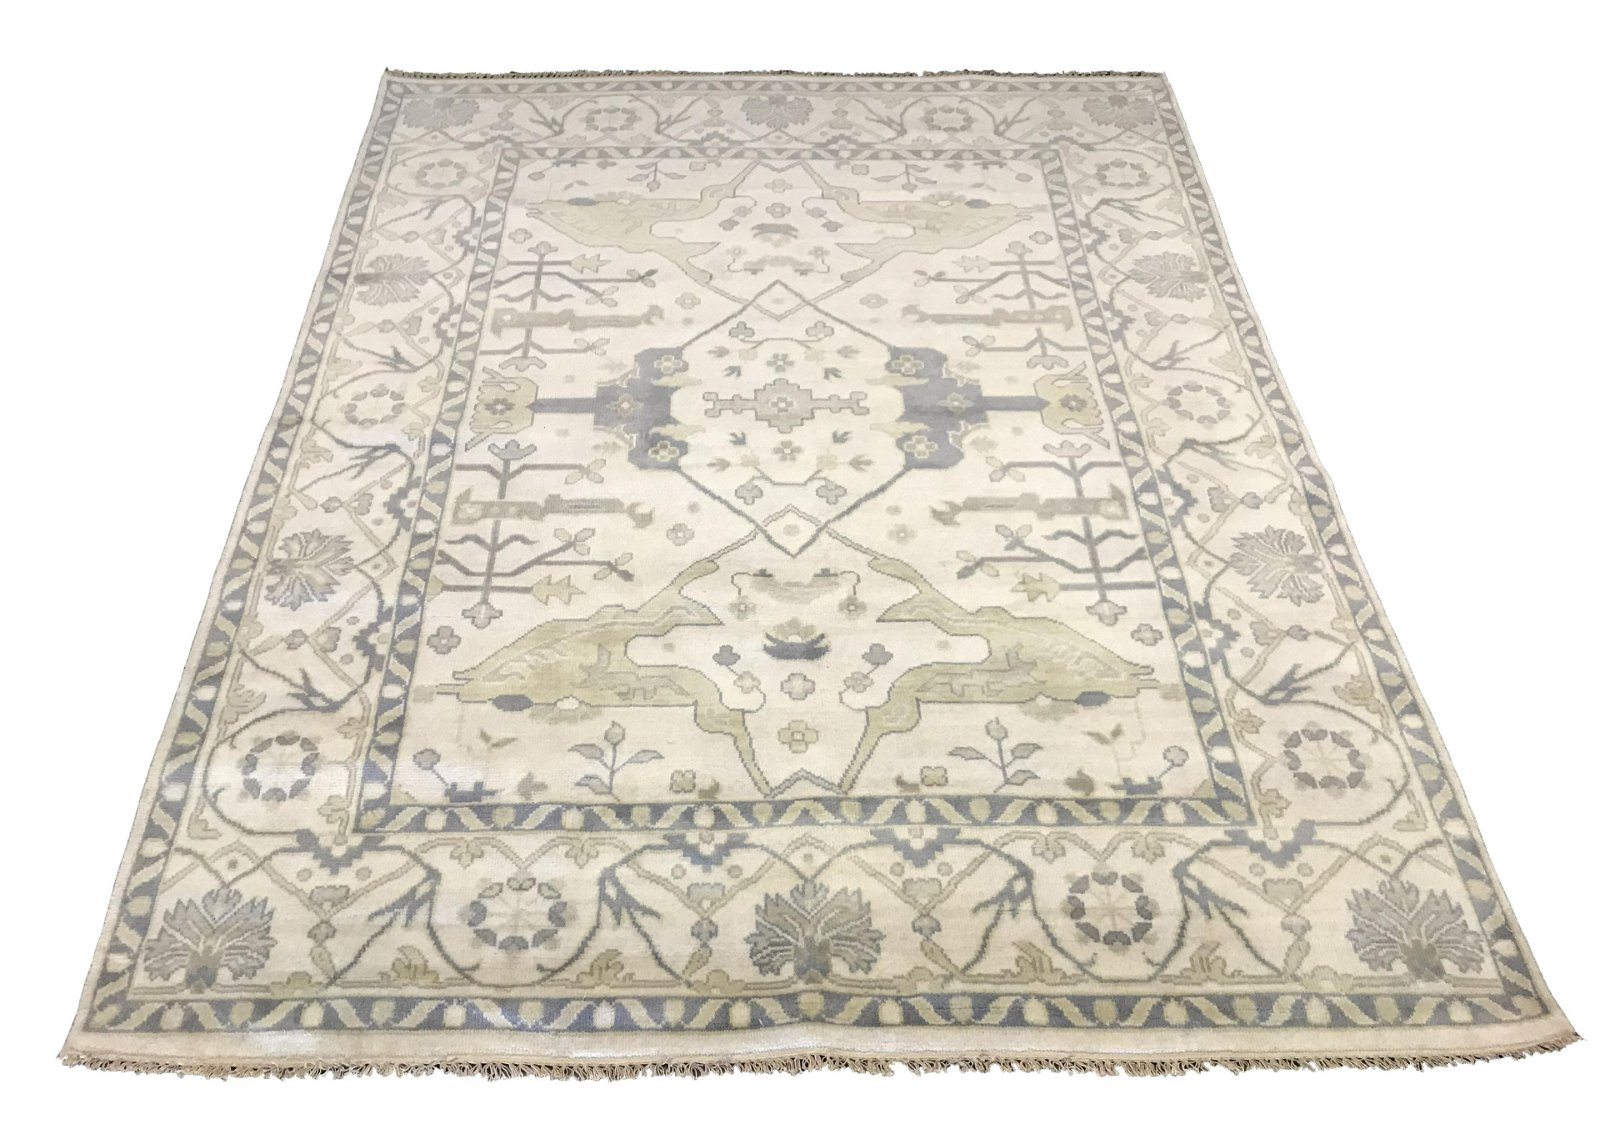 8X10 Oushak Area Rug Ivory Hand-Knotted Wool Oriental